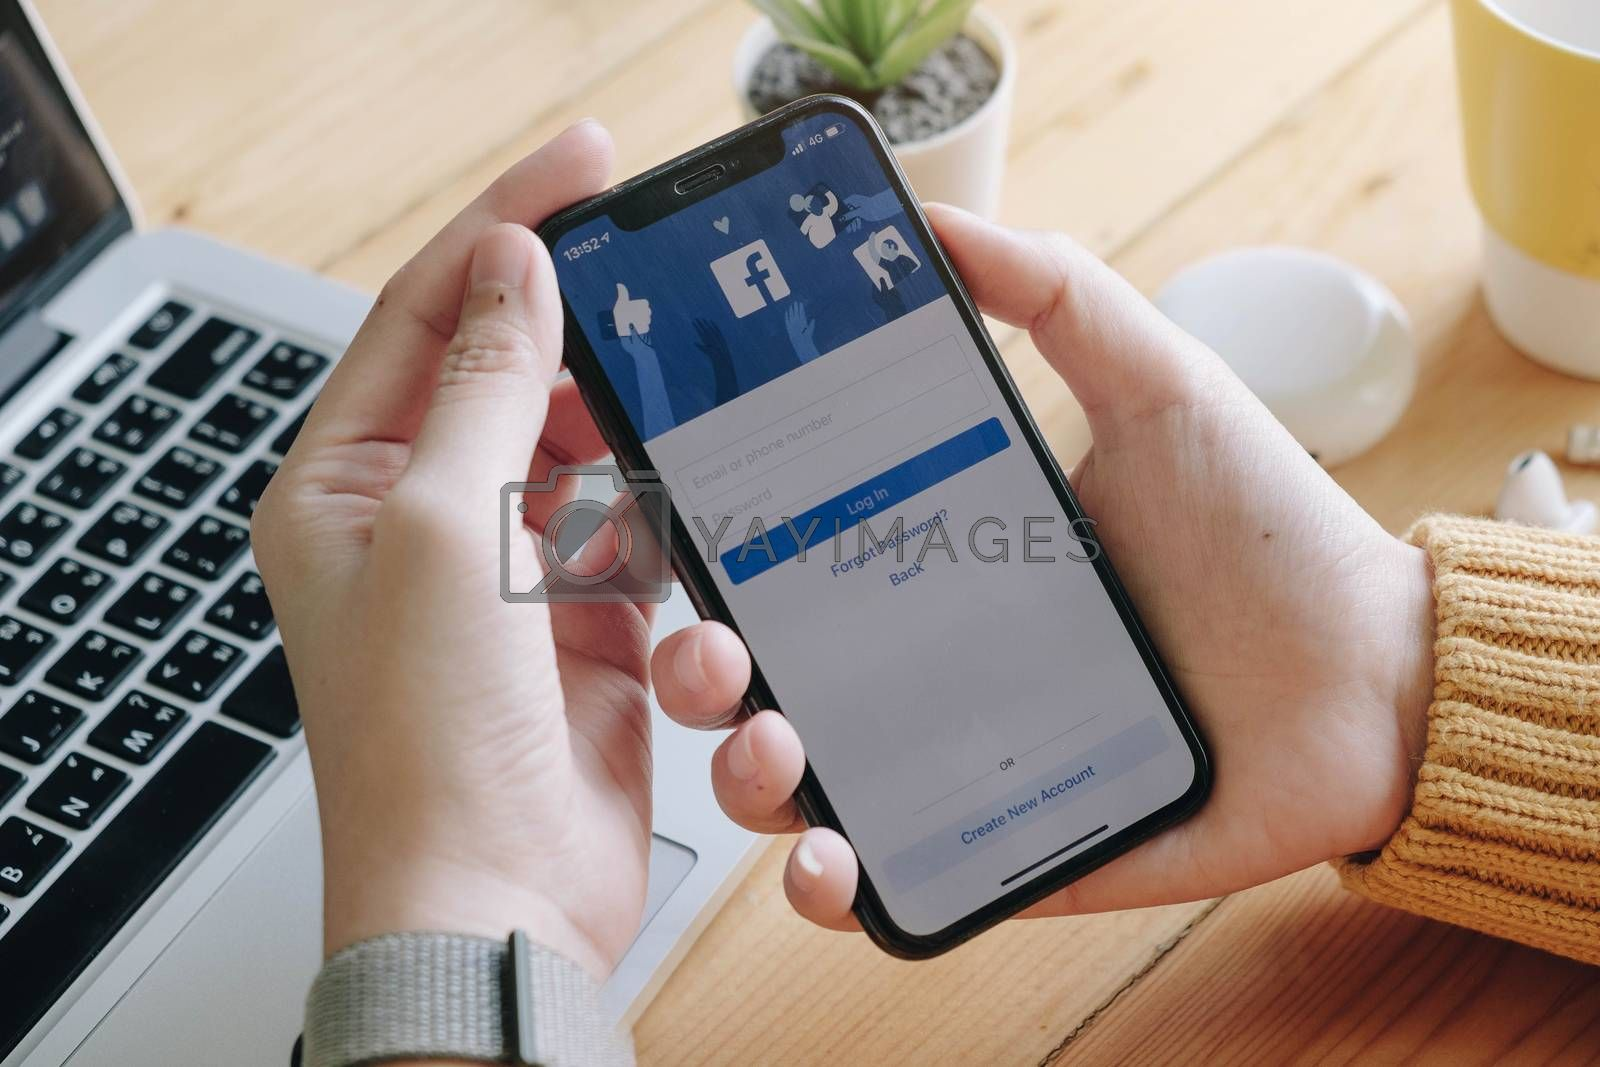 CHIANG MAI, THAILAND - JUN 7, 2020: Facebook social media app logo on log-in, sign-up registration page on mobile app screen on iPhone X (10) in person's hand working on e-commerce shopping business